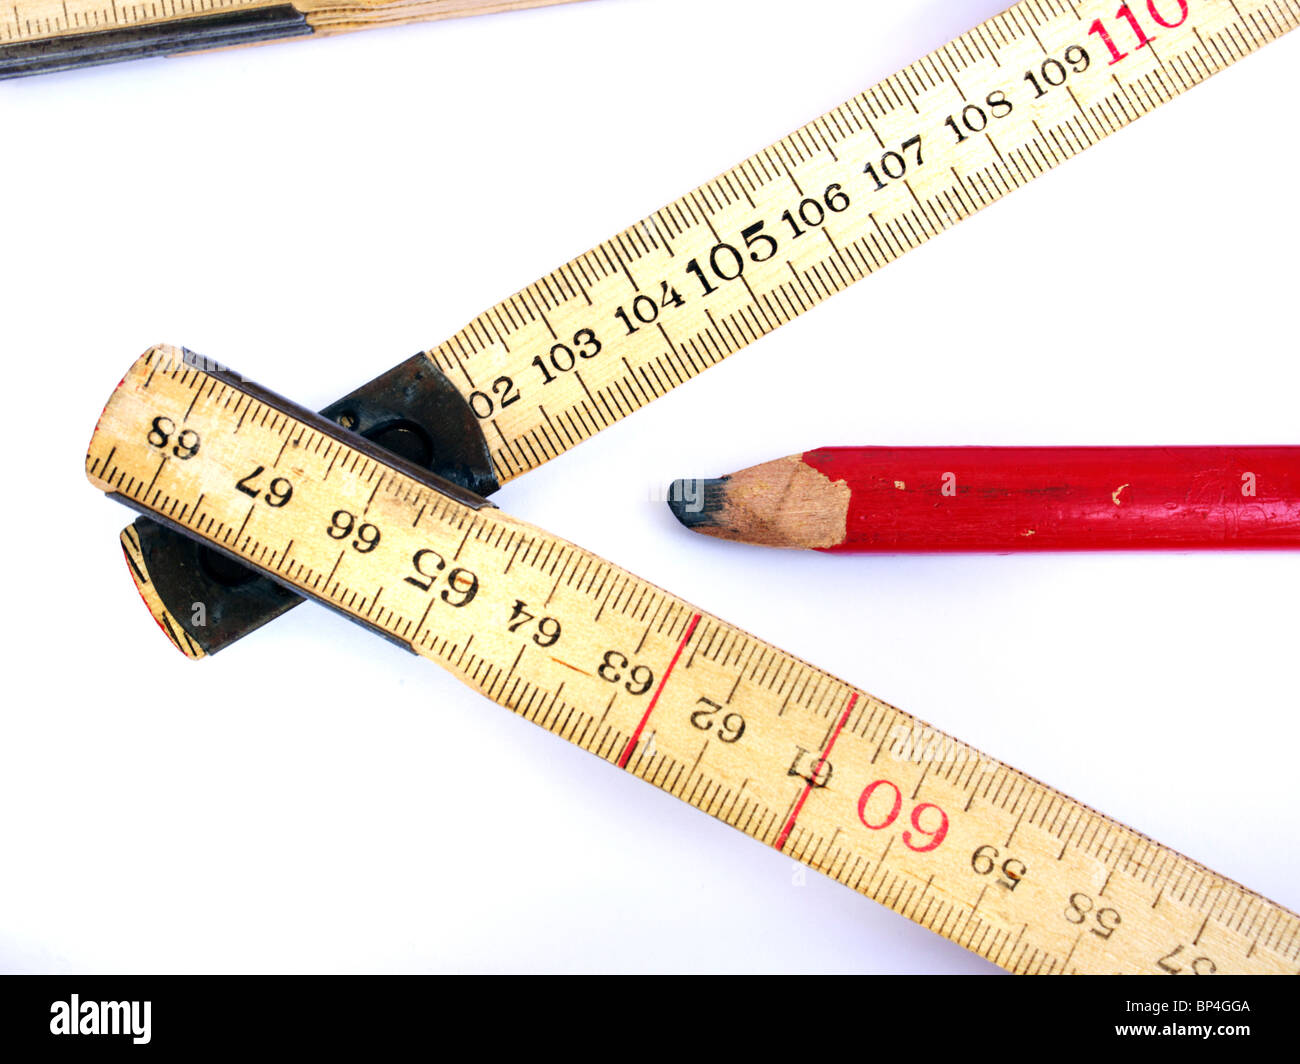 Tape measure and carpenter's pencil - Stock Image